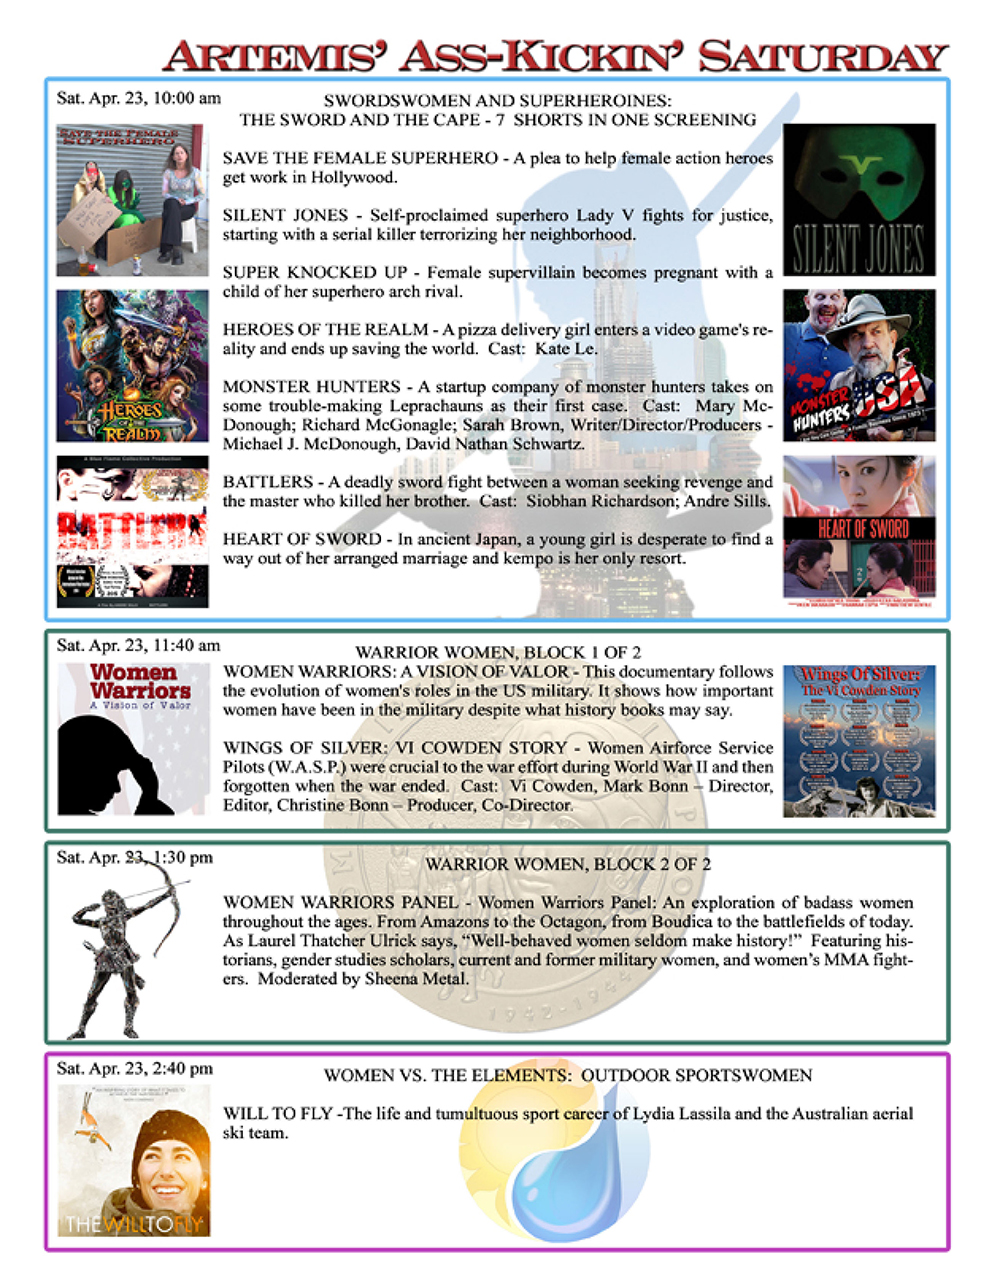 Artemis Women in Action Film Festival 2016 Program page 6